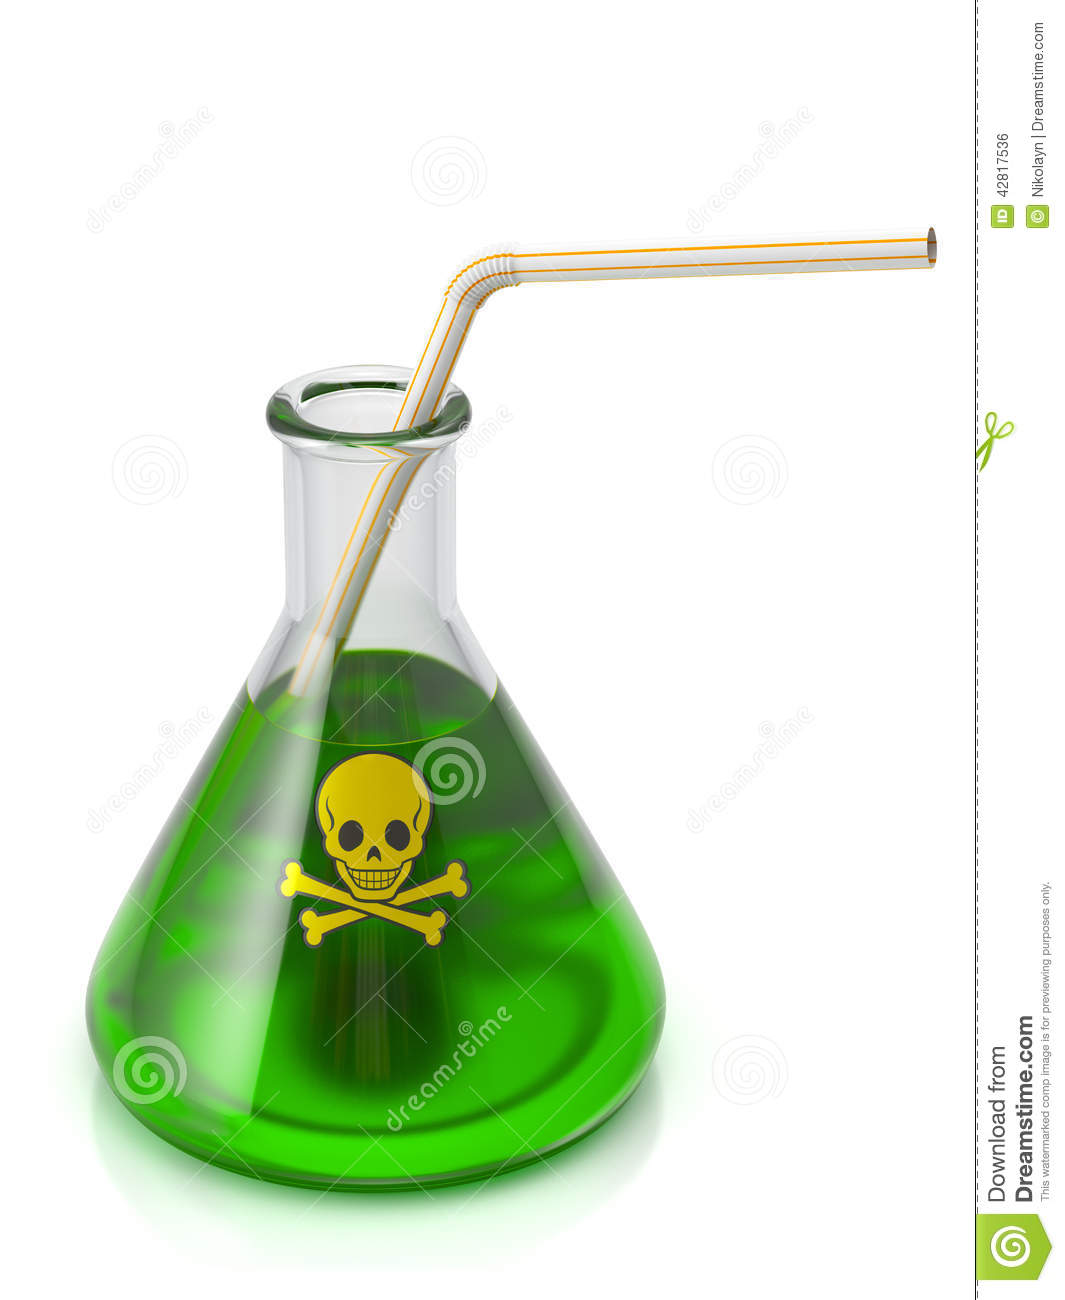 ... straw. Erlenmeyer test tube marked sign with a skull and crossbones